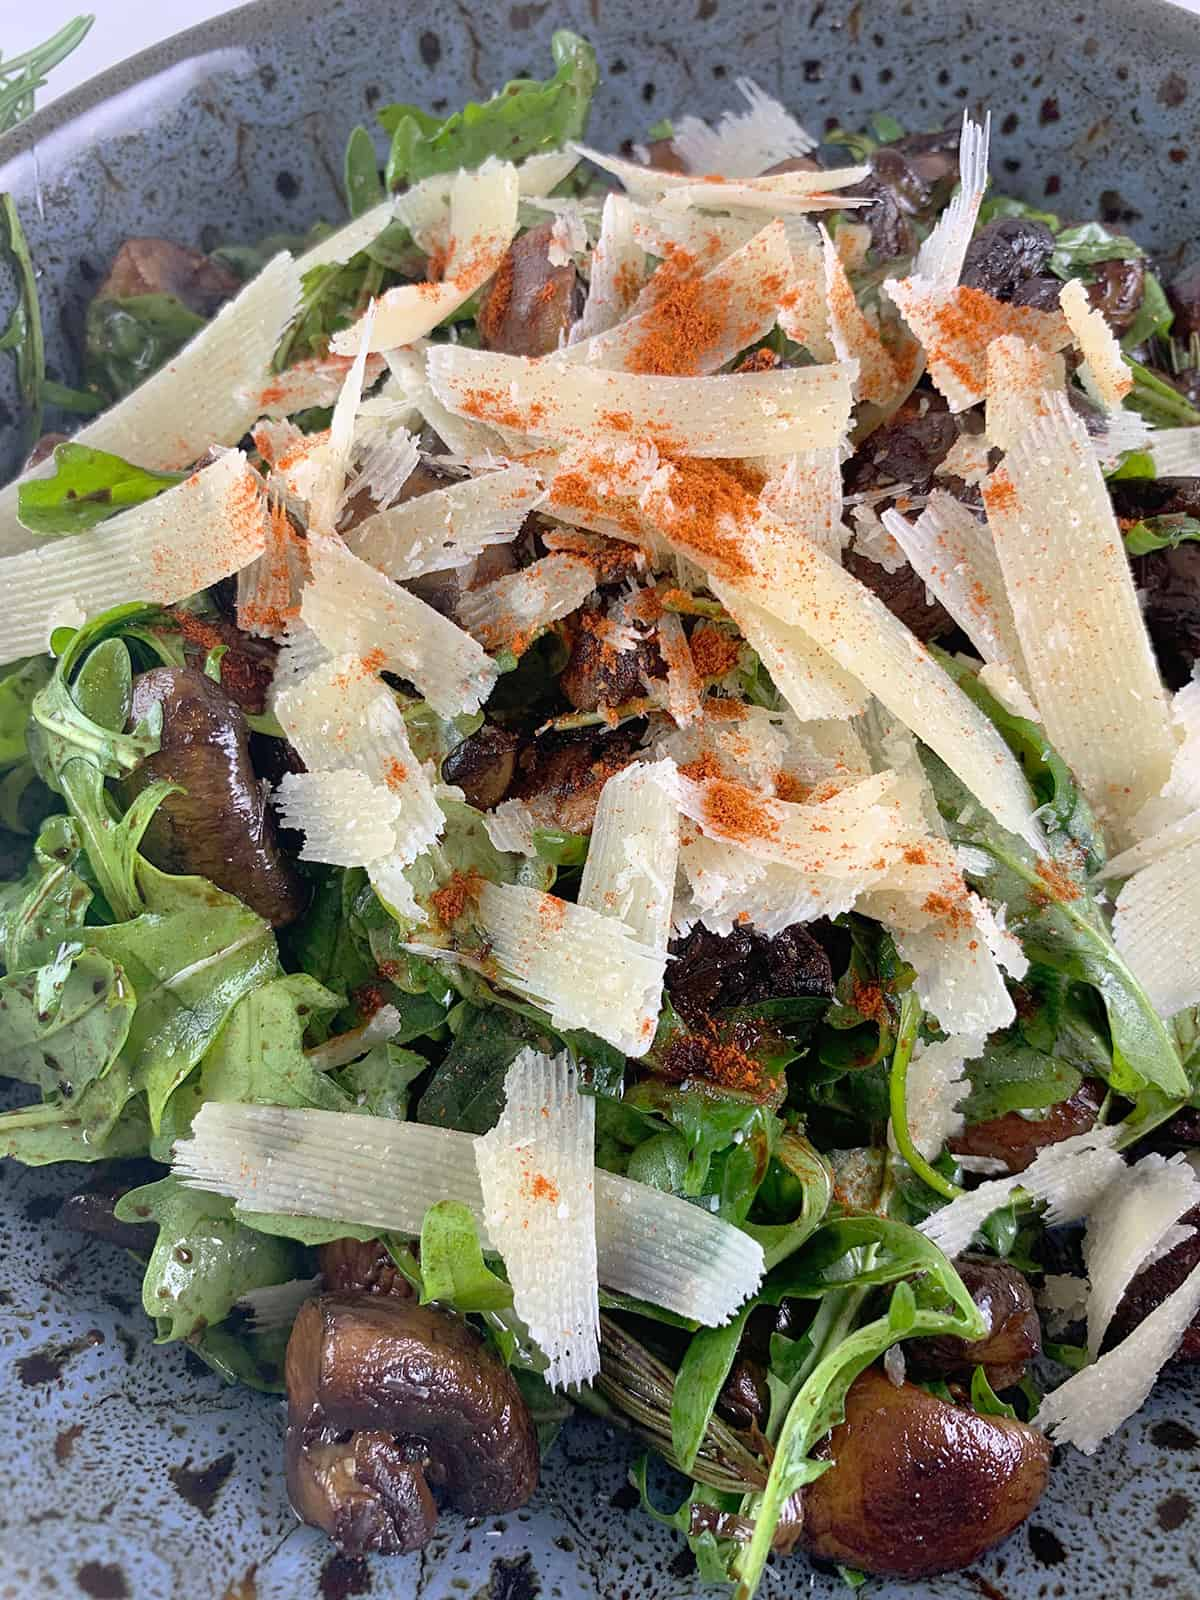 CLOSE UP OF OUR BALSAMIC MUSHROOM SALAD RECIPE